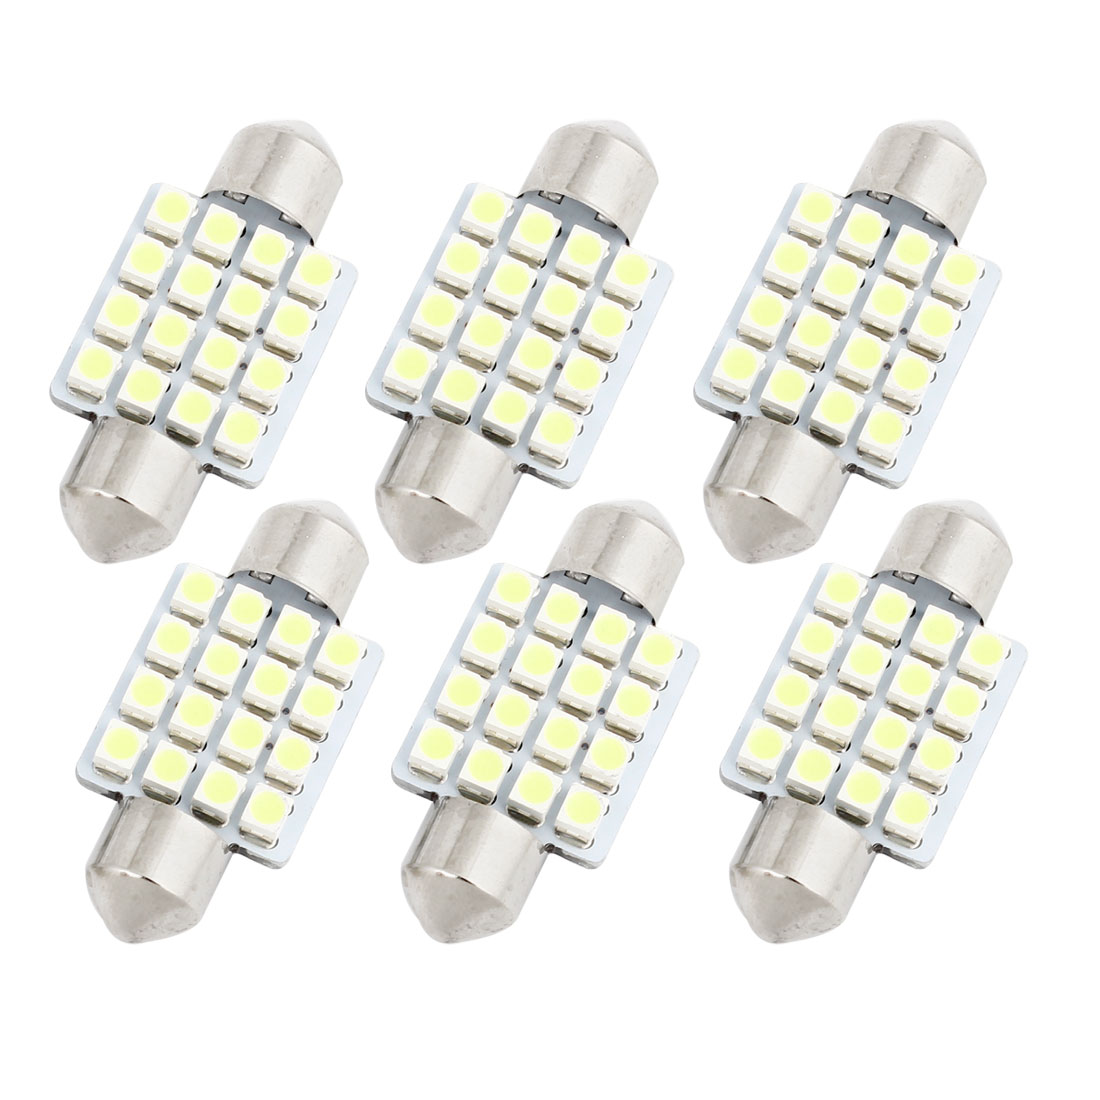 6pcs 36mm 3528 SMD 16-LED Festoon Map Reading Light Lamp White DE3425 Internal